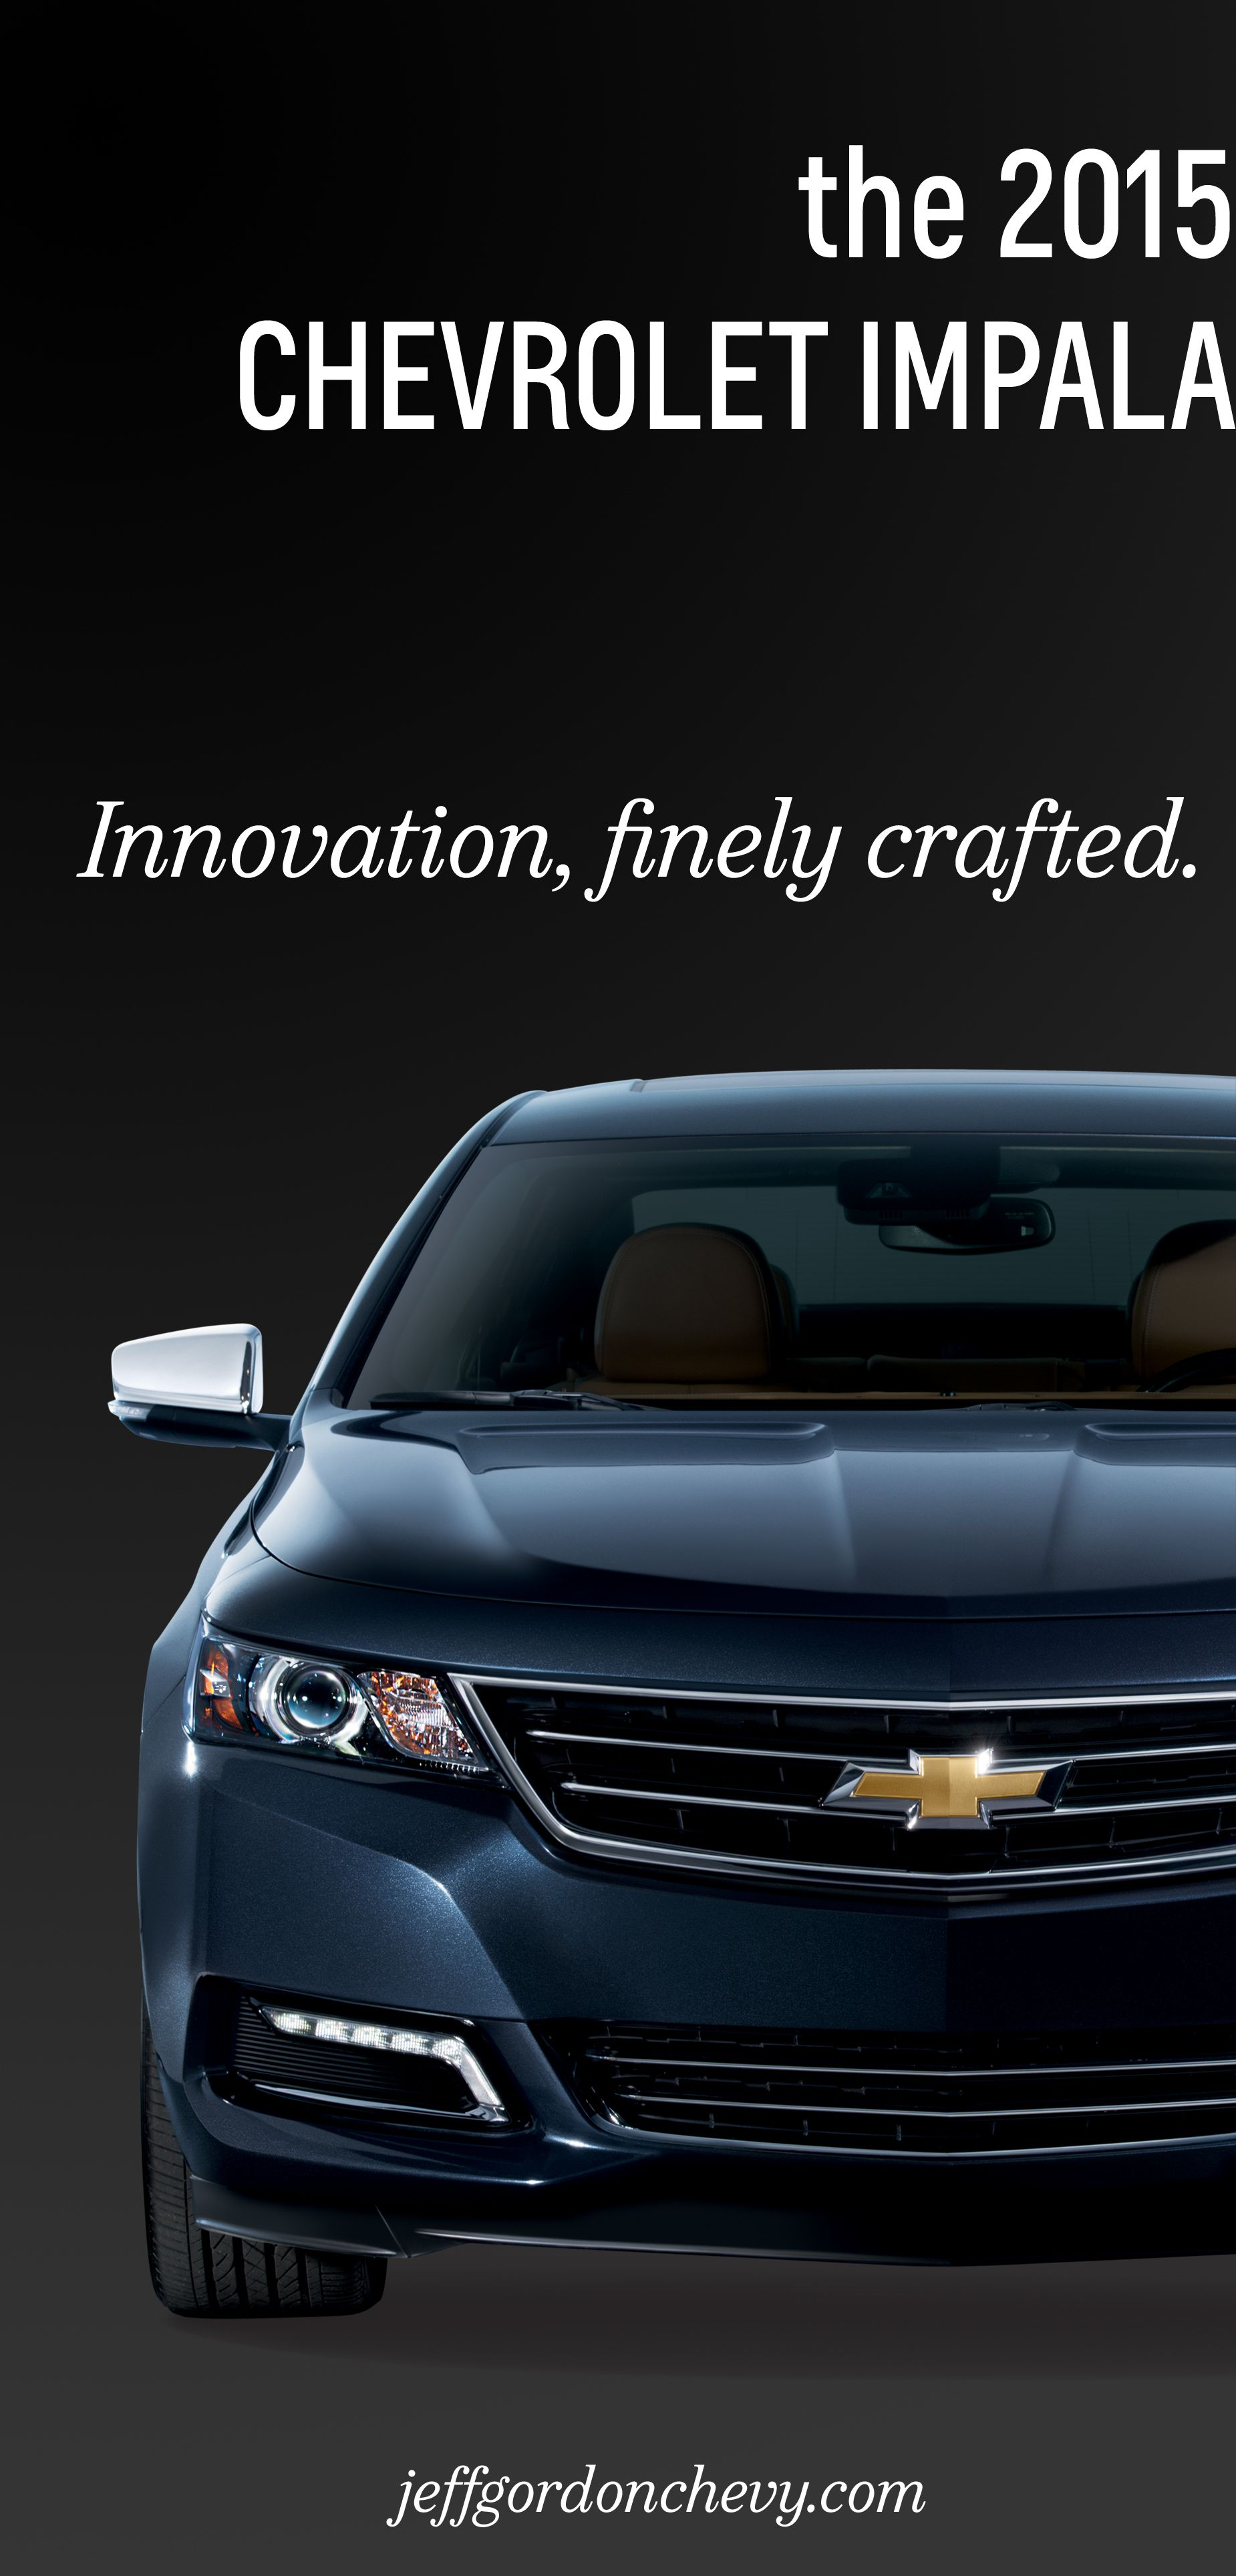 The 2015 Chevrolet Impala Innovation Finely Crafted Chevrolet Impala Chevrolet Impala